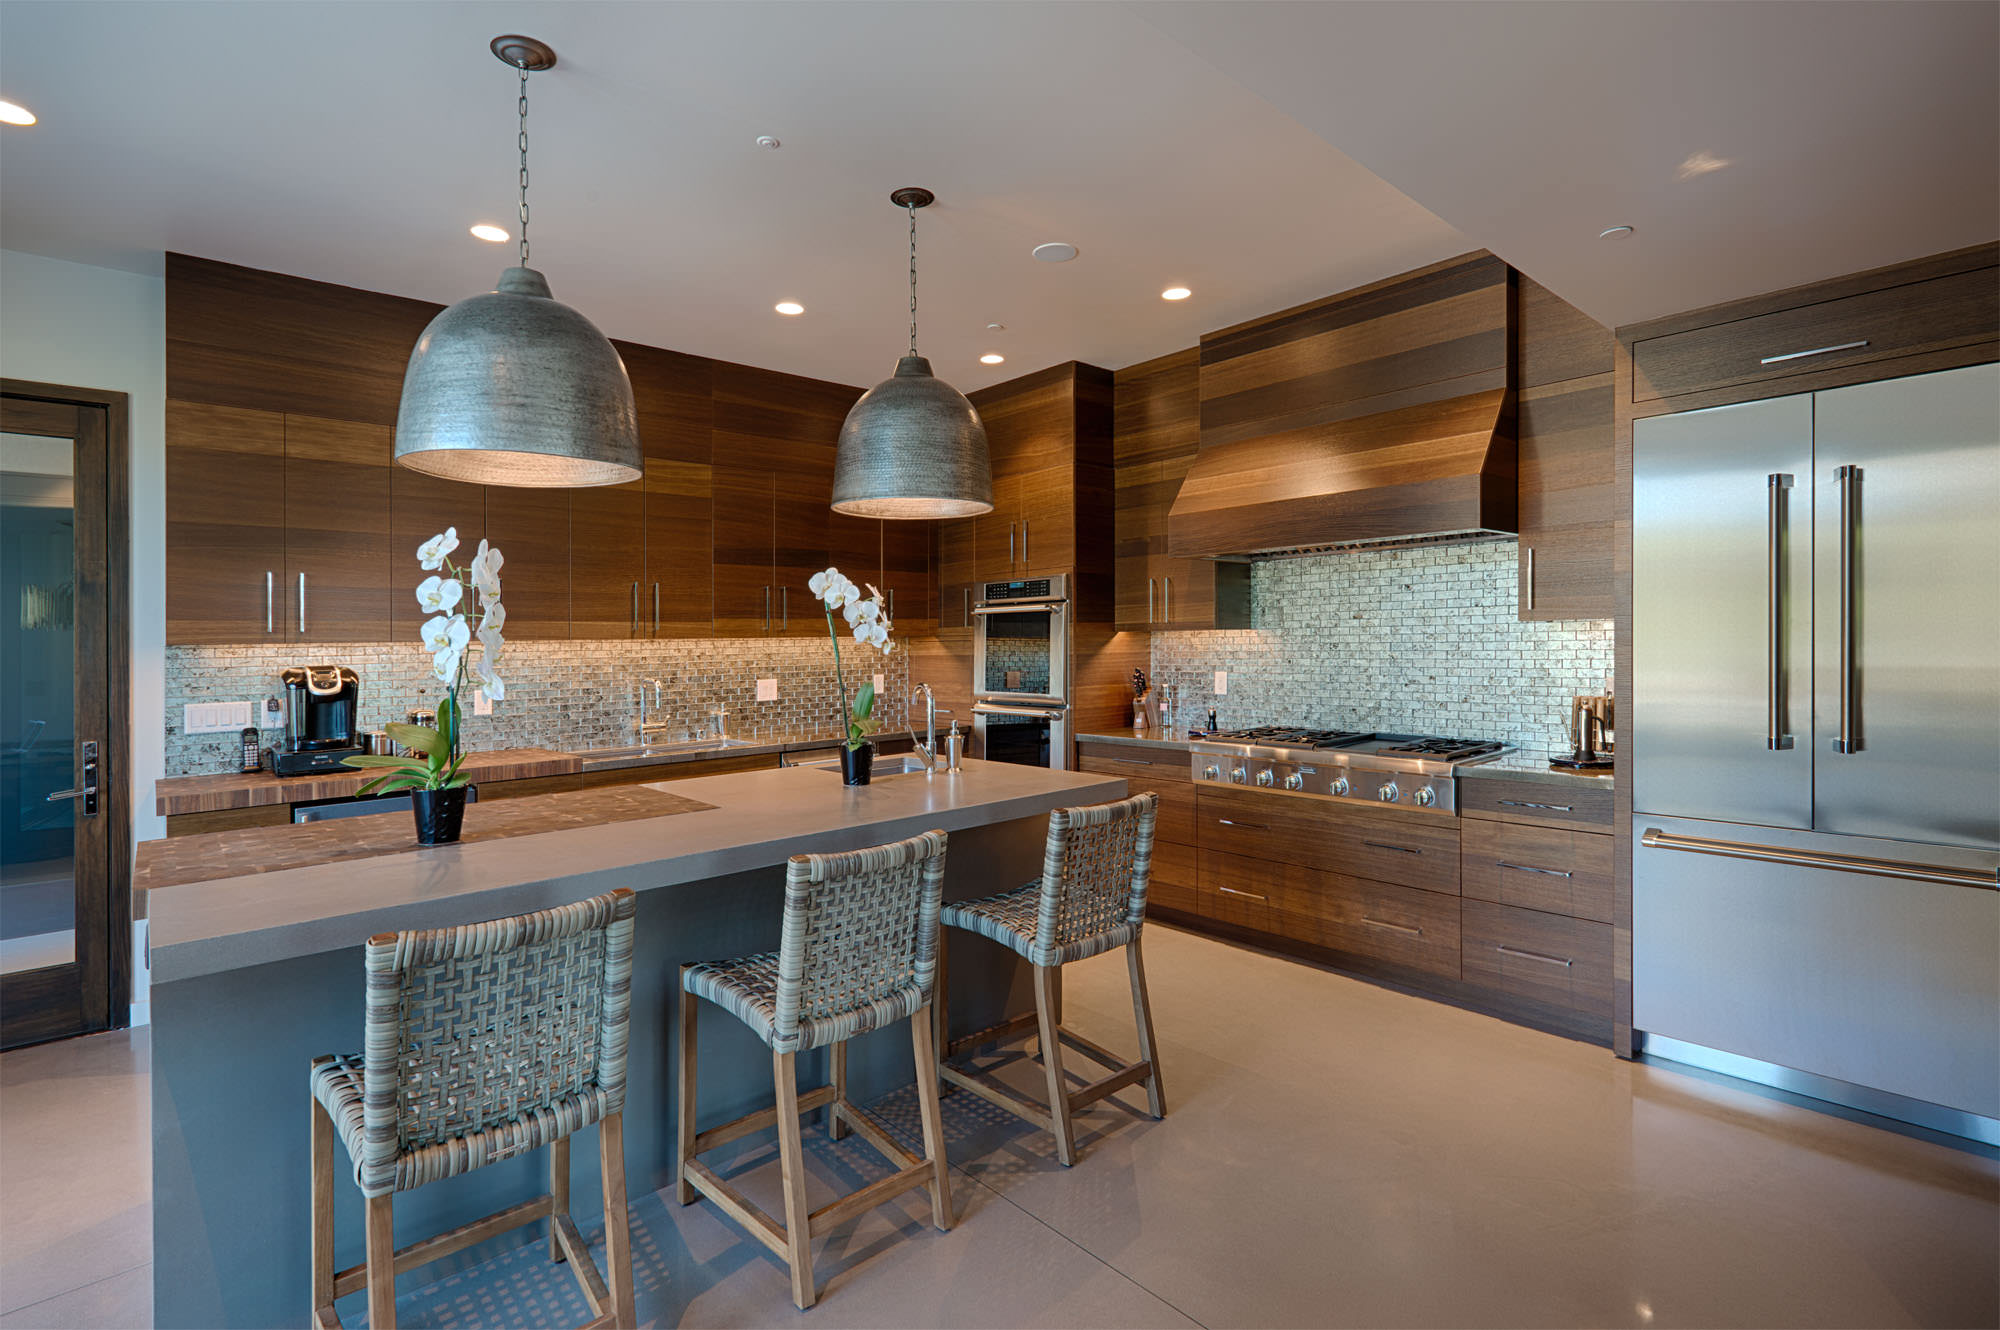 Modern kitchen with wood cabinets